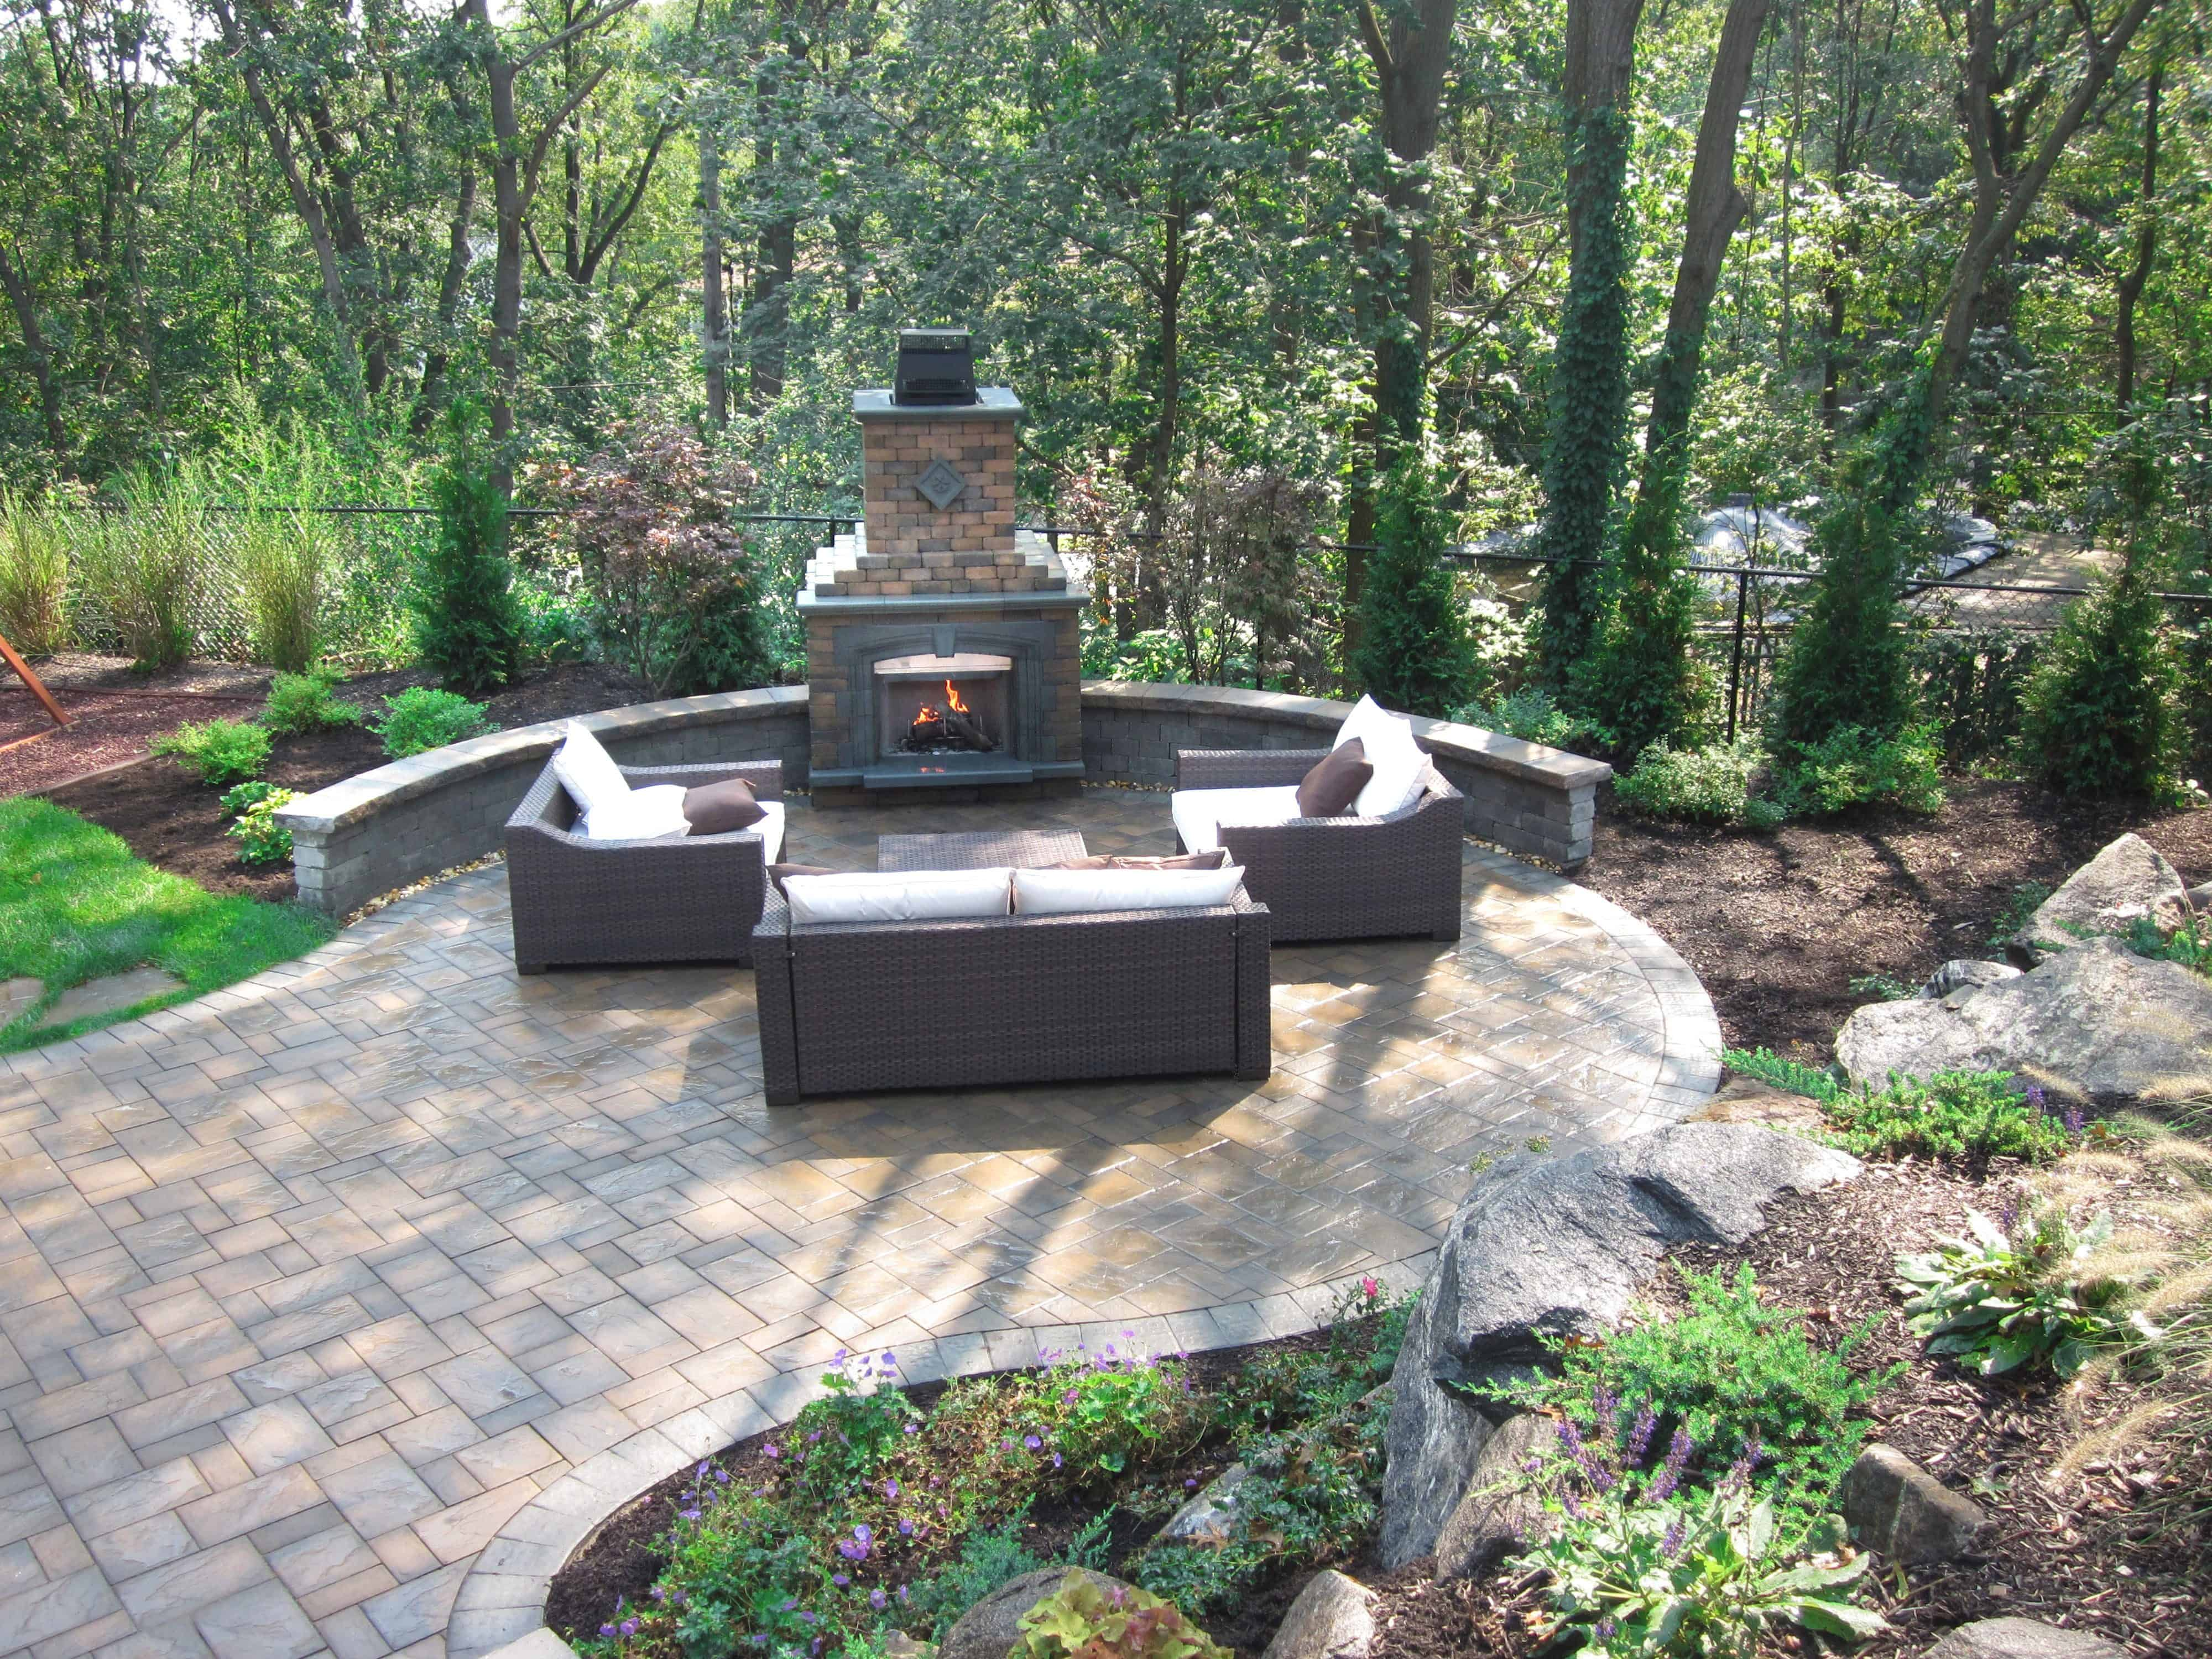 Cambridge Olde English Fireplace with Olde English Seat Wall - Onyx Natural and Toffee / Onyx Splitface Cap - Smithtown, Long Island NY